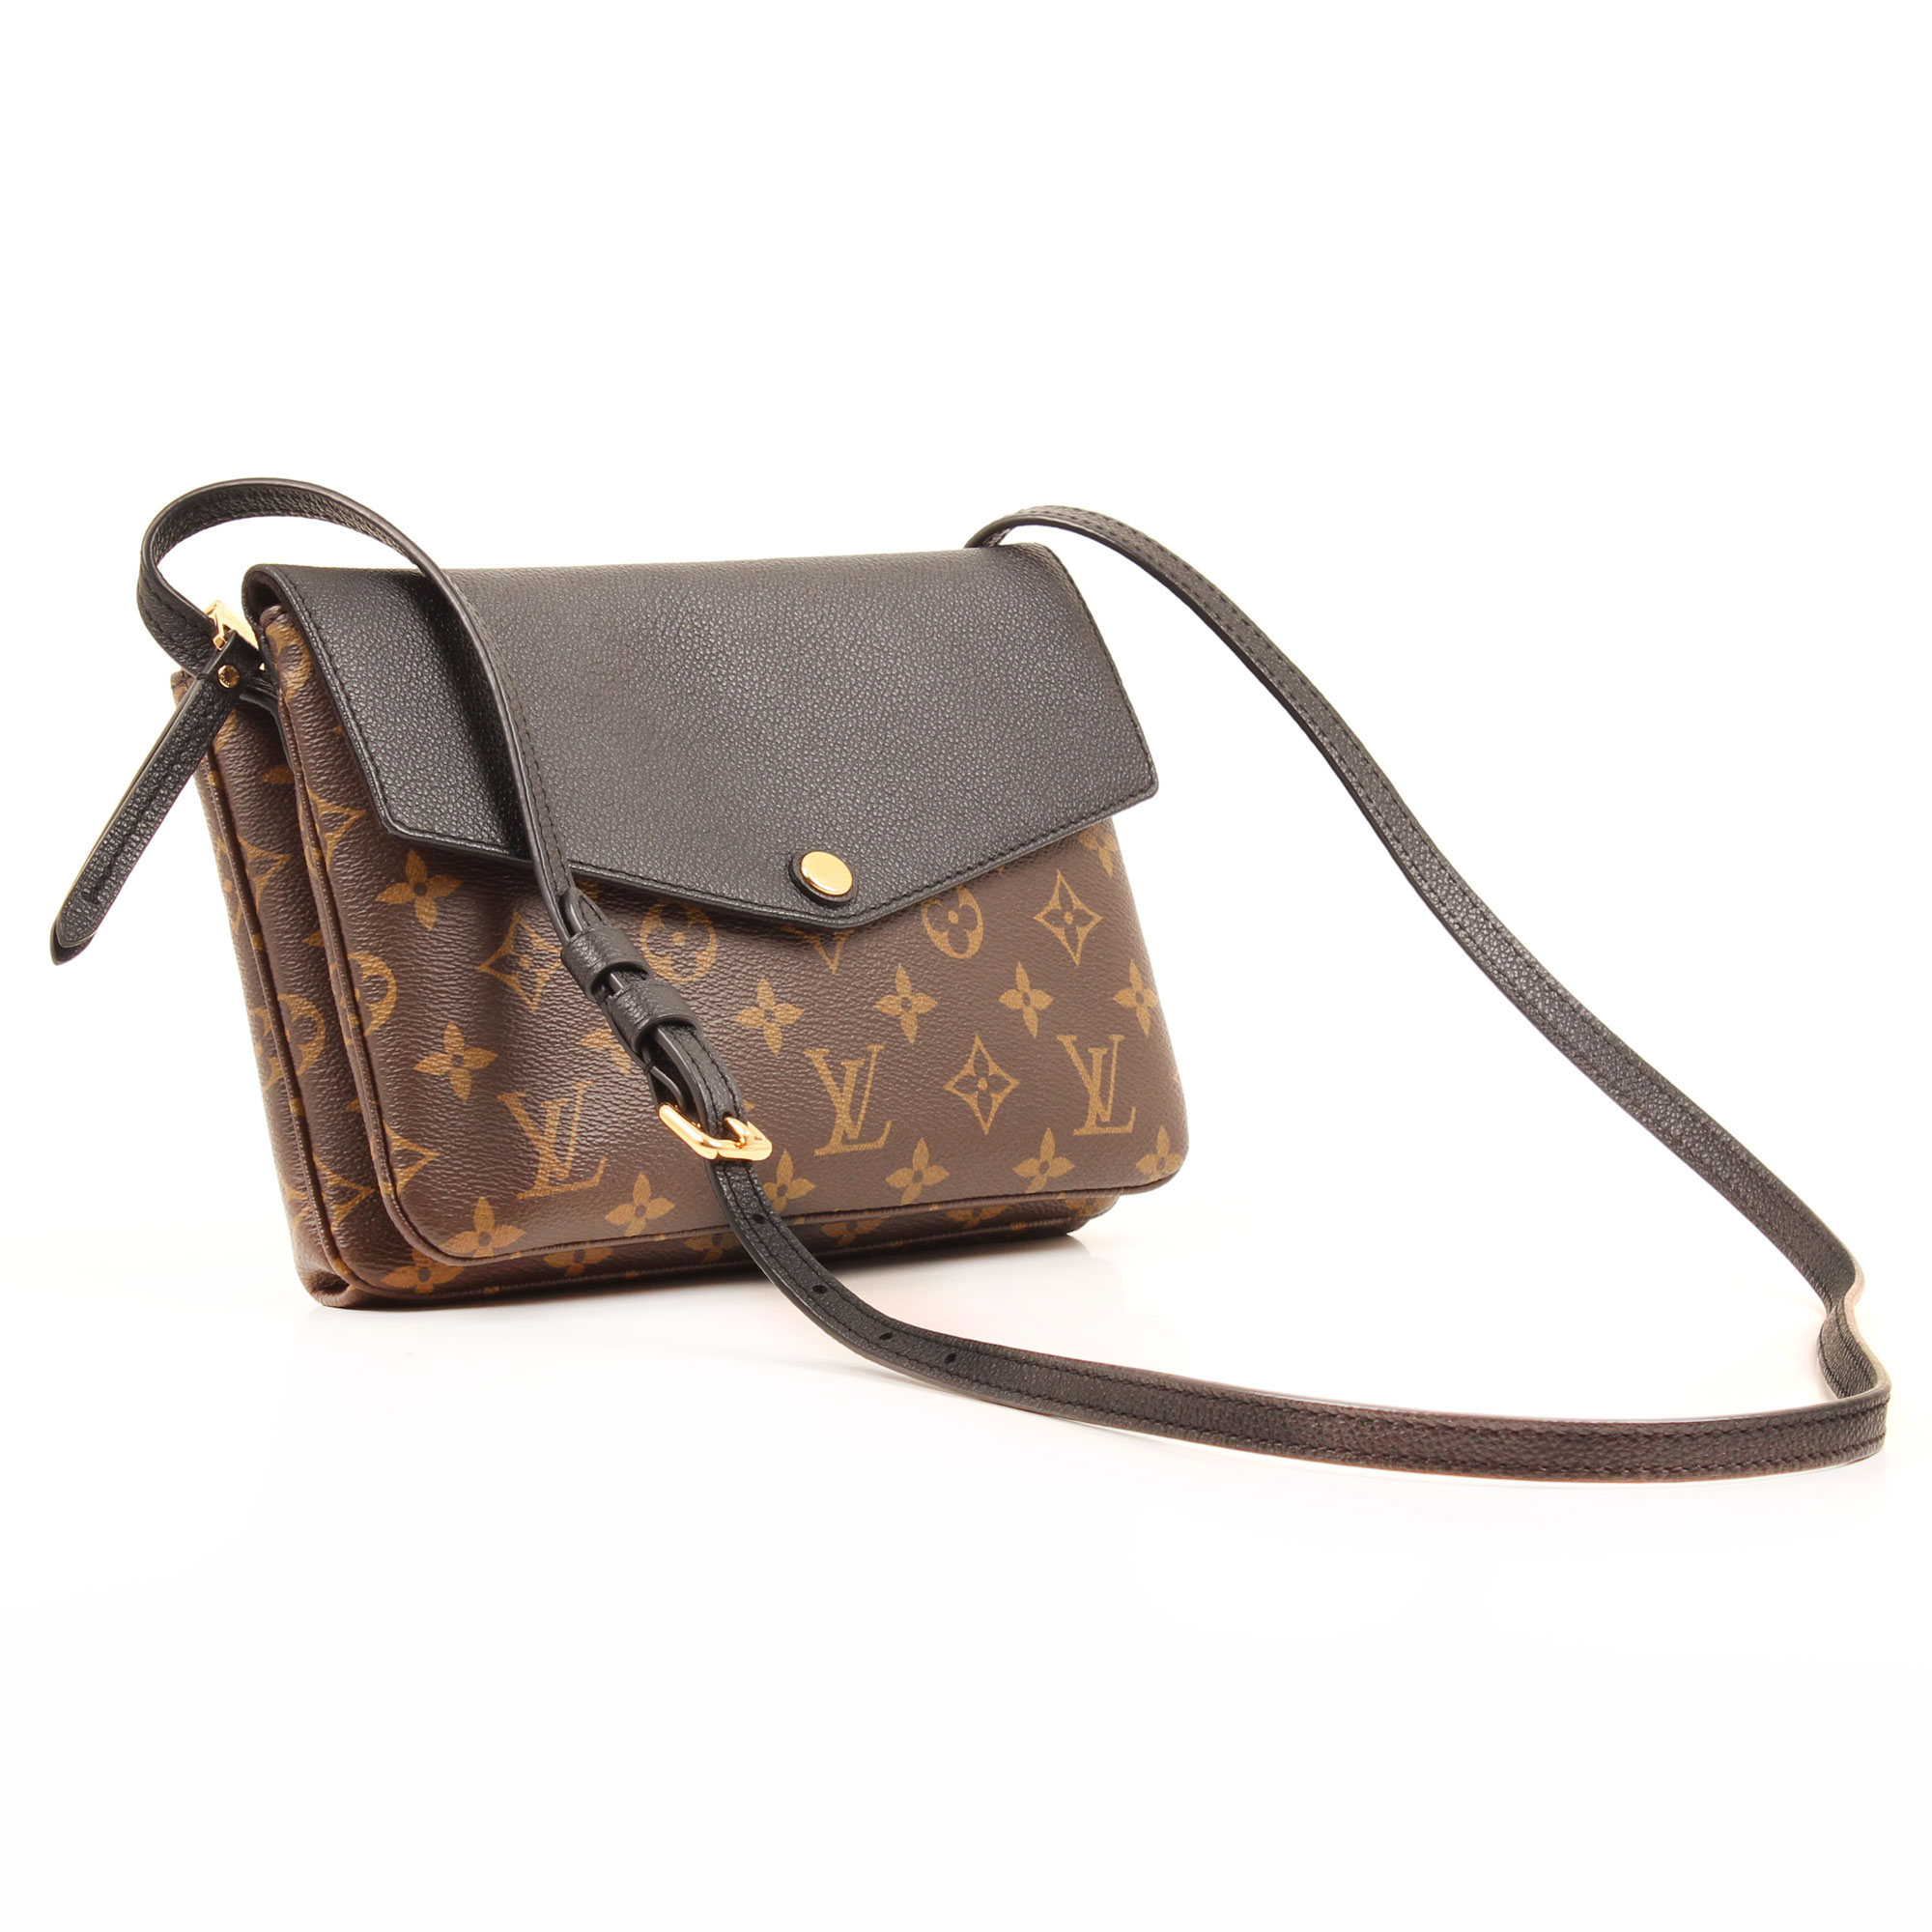 Imagen general 2 del bolso louis vuitton twice bandolera monogram macassar